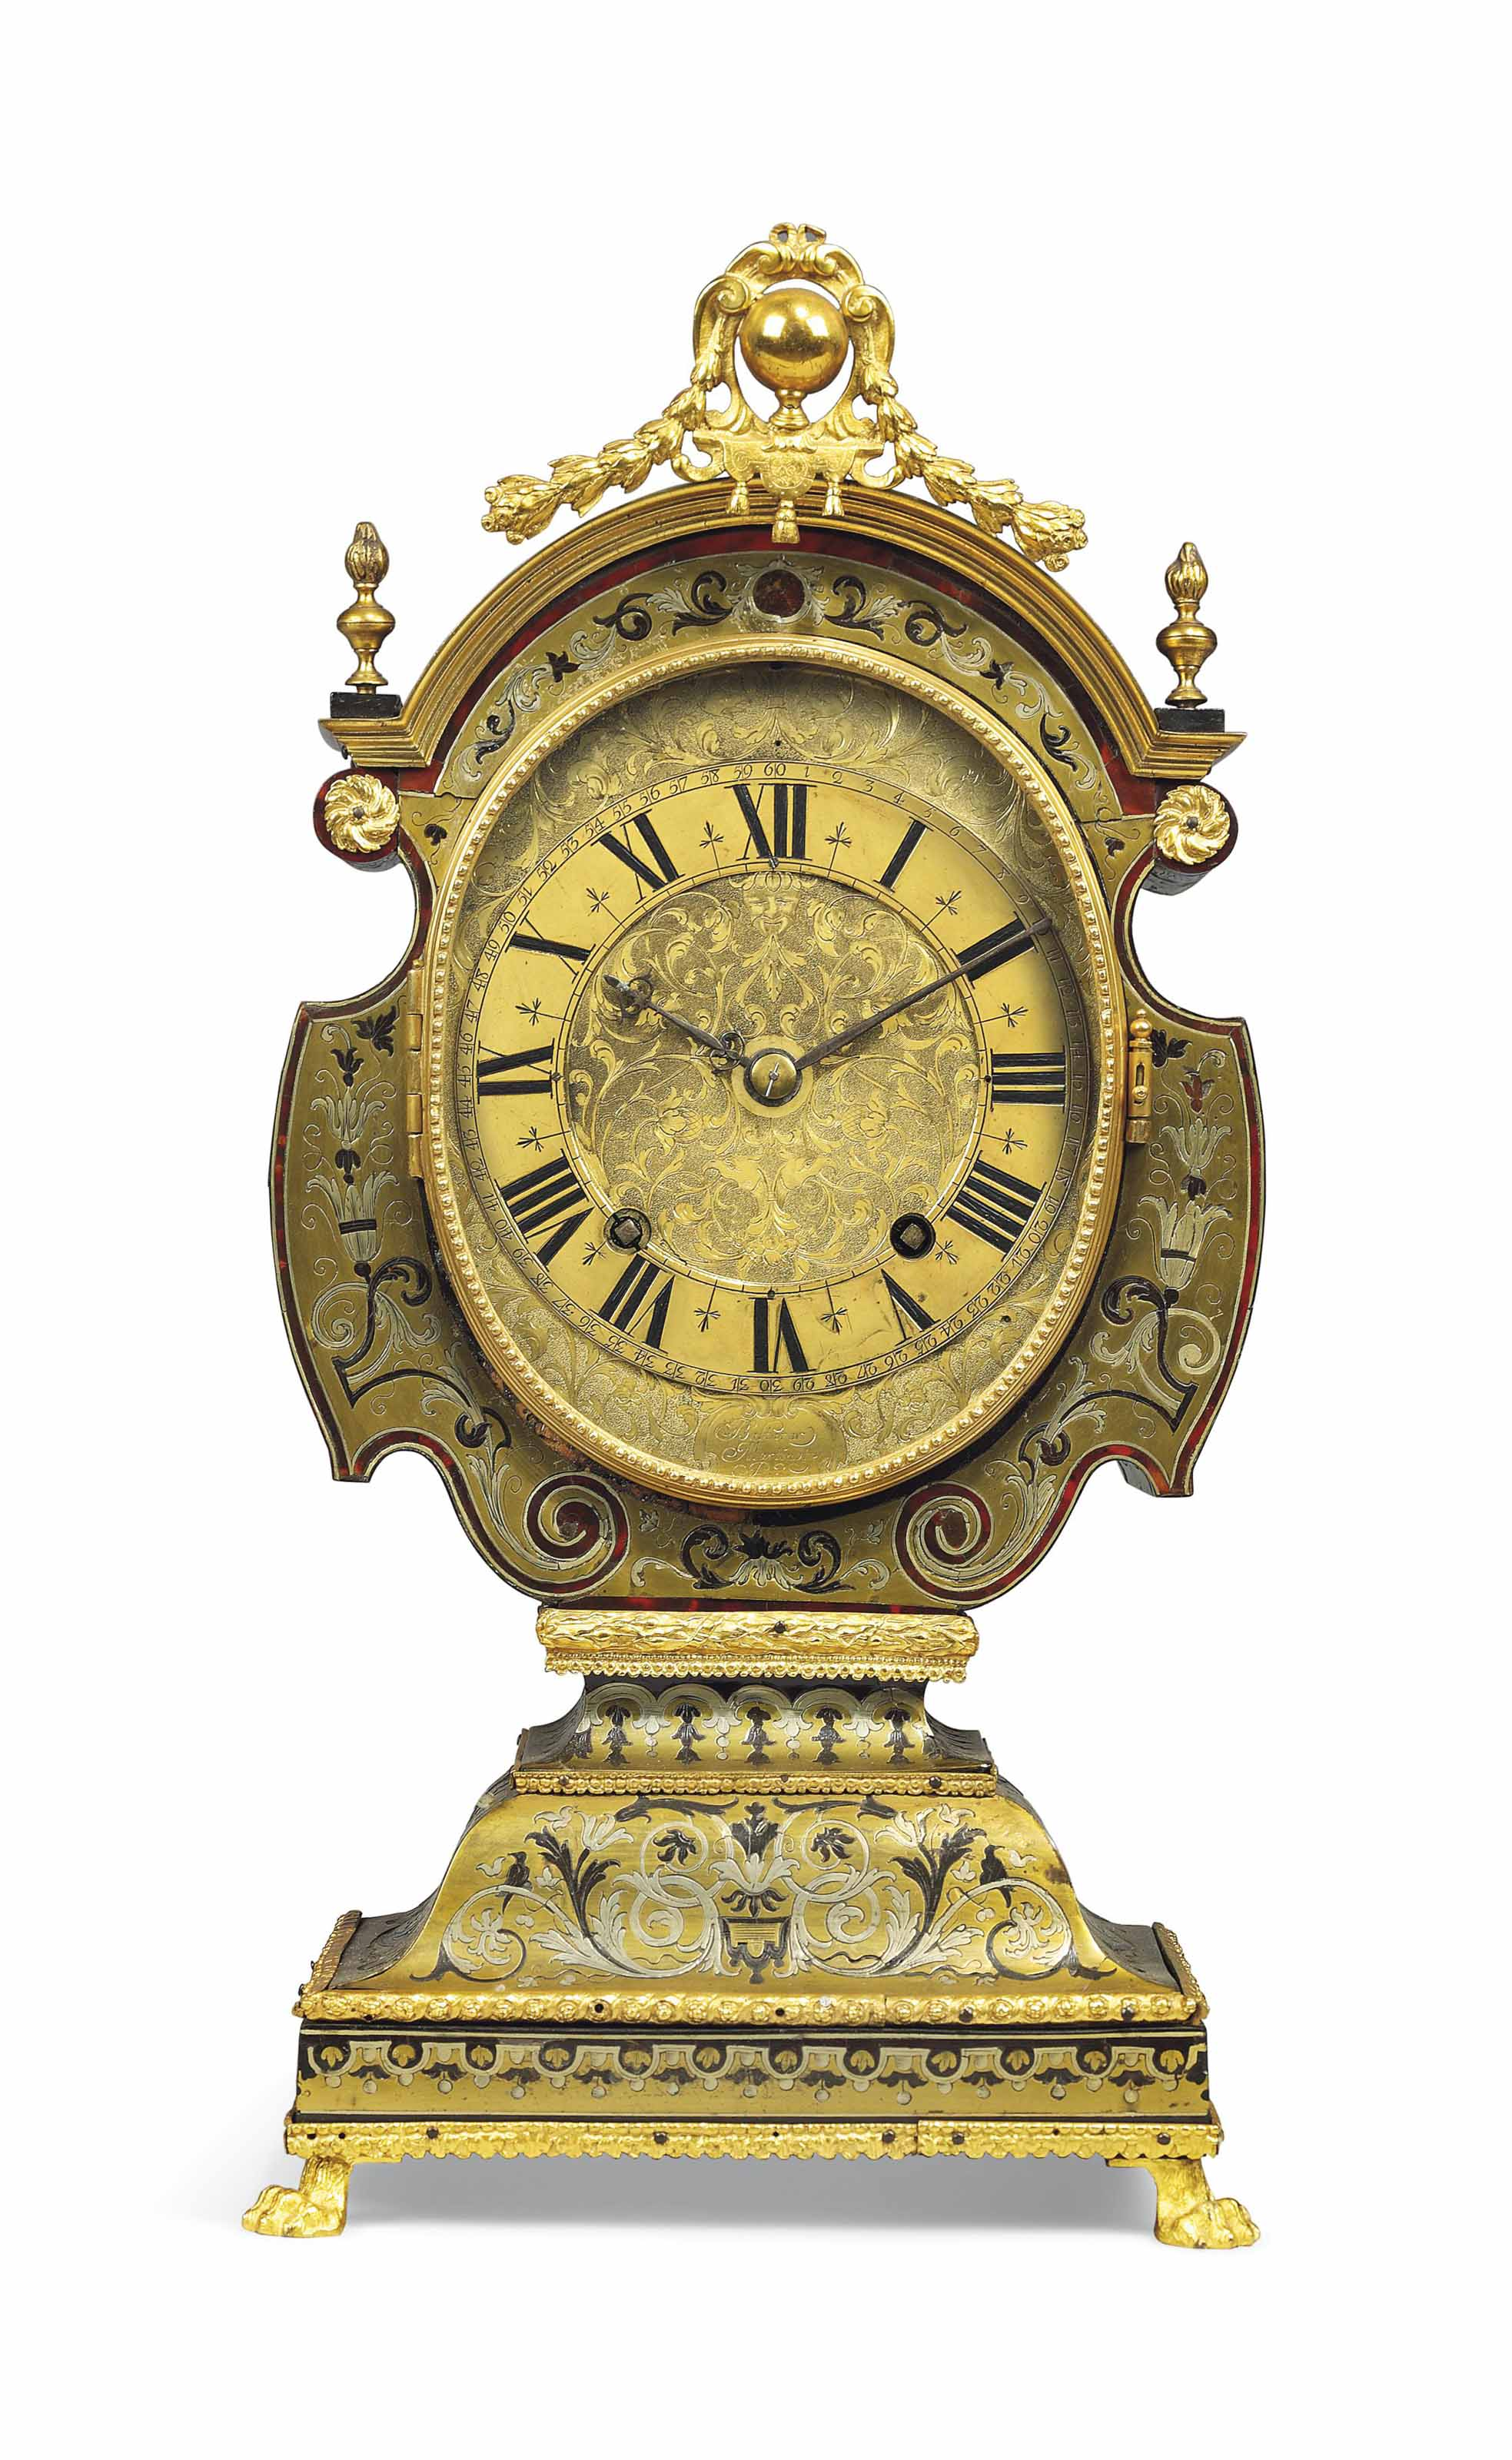 A LOUIS XIV TORTOISESHELL, BRASS AND PEWTER-INLAID STRIKING 'TETE DE POUPEE' CLOCK